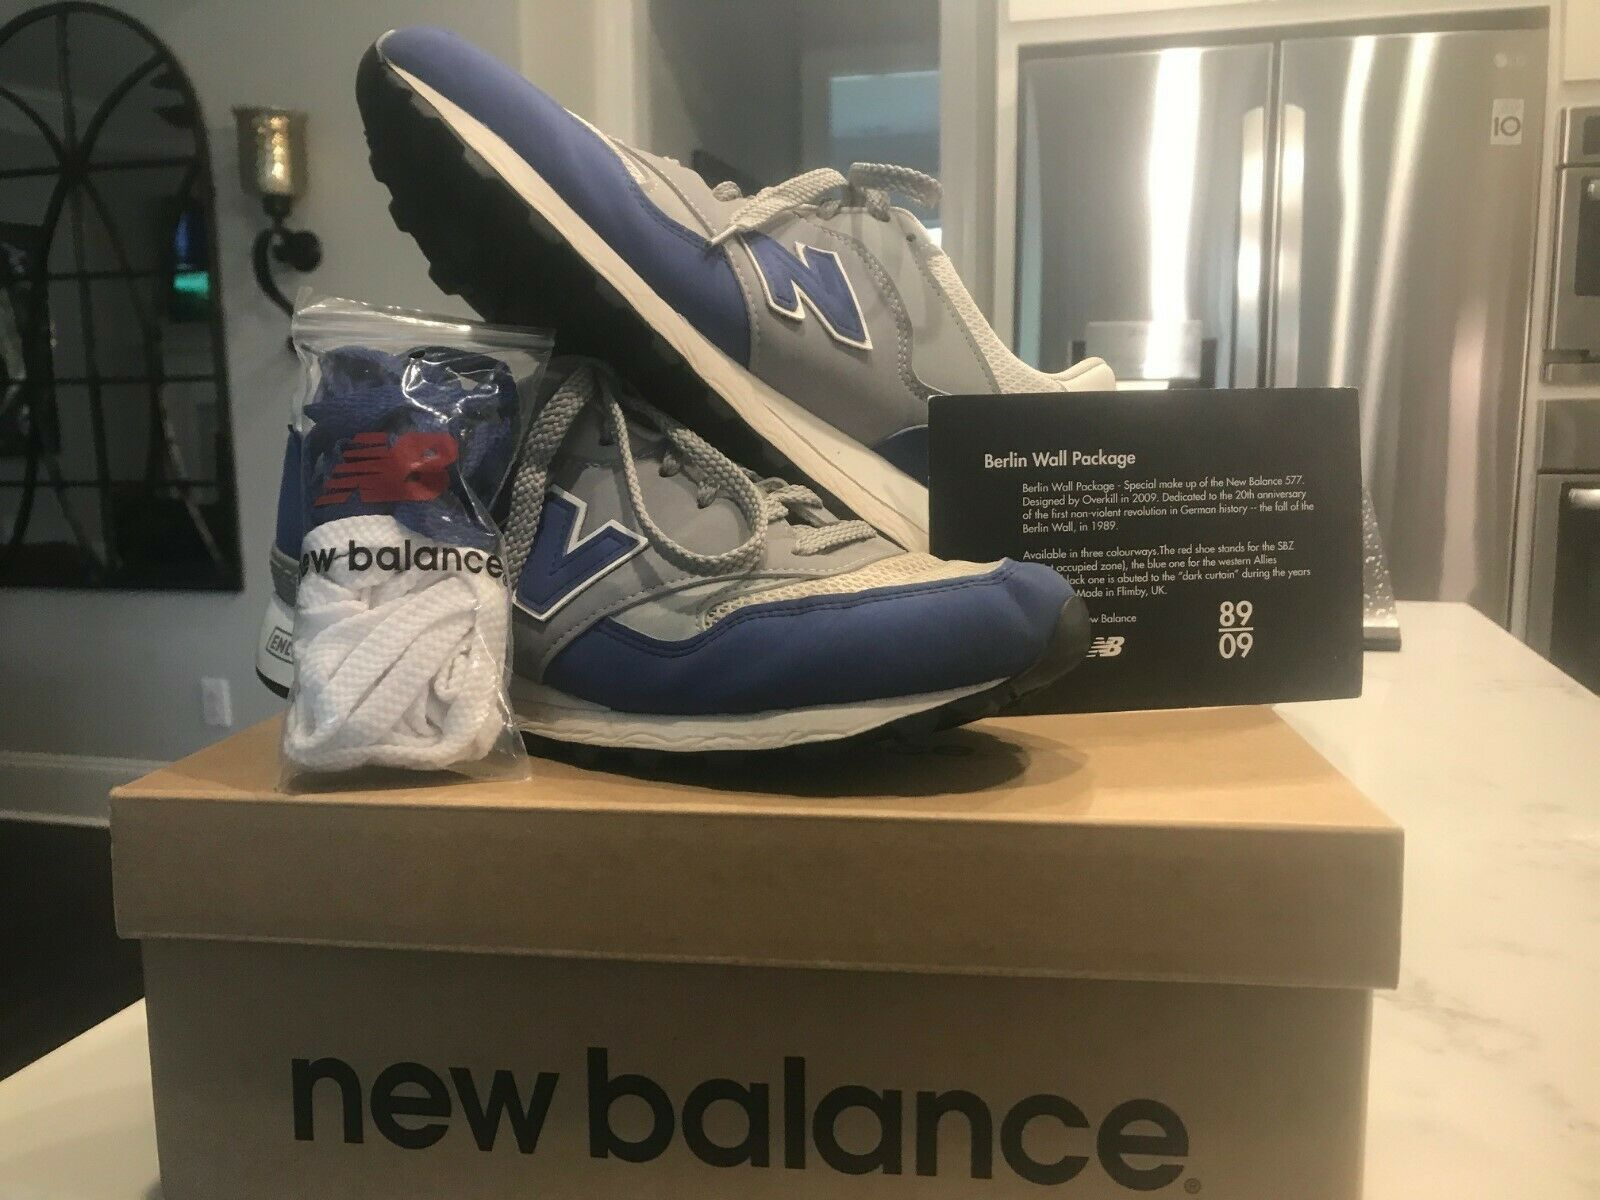 NEW BALANCE BWG577 X BERLIN WALL COLLECTION blueE  WHITE SIZE 9.5 RARE